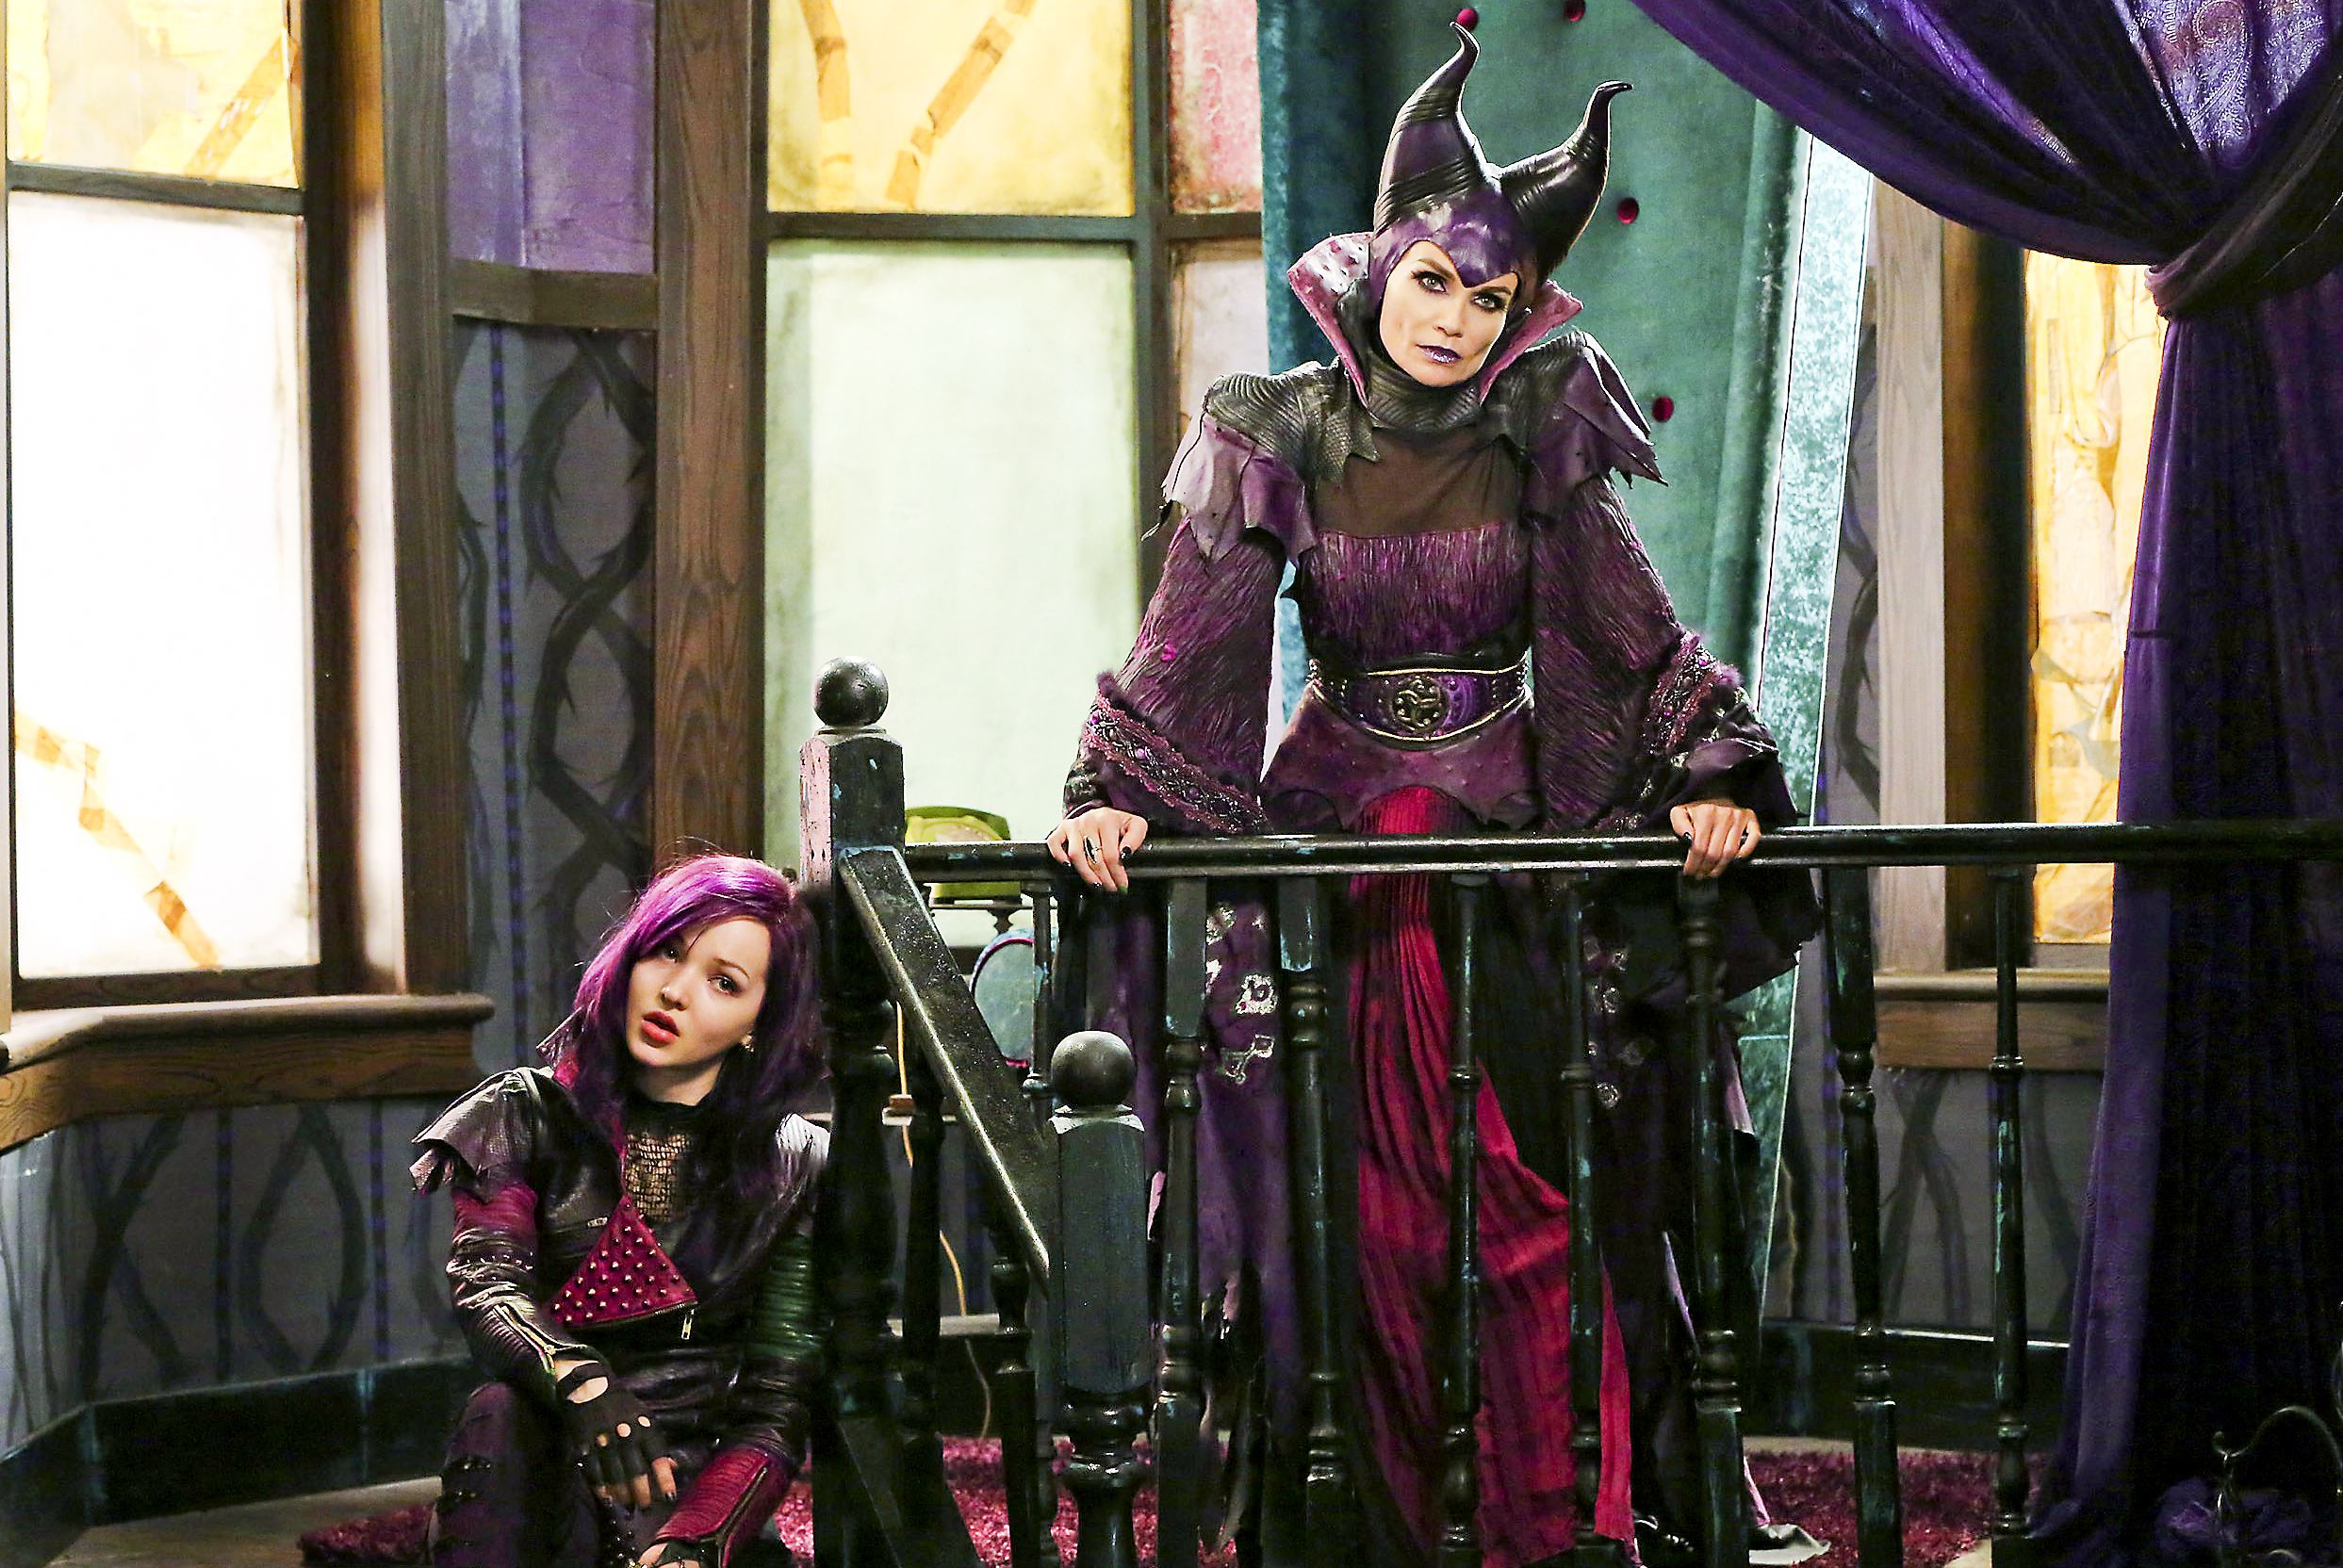 Disney Descendants - Disney Channel - Descendants Villain Quiz